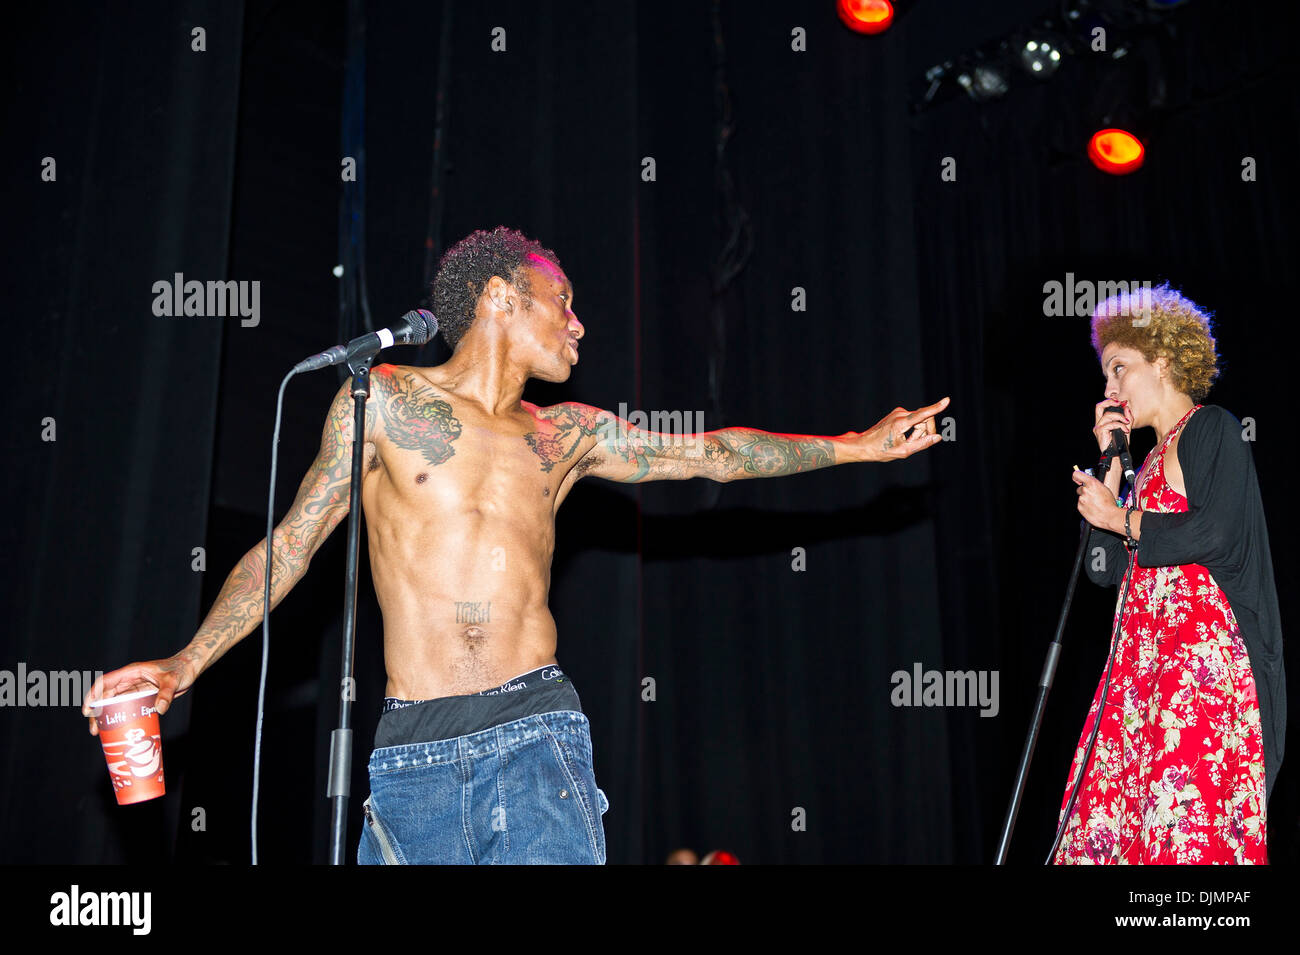 Tricky and Martina Topley Bird perform at the Indigo London, UK - 27.04.12 - Stock Image